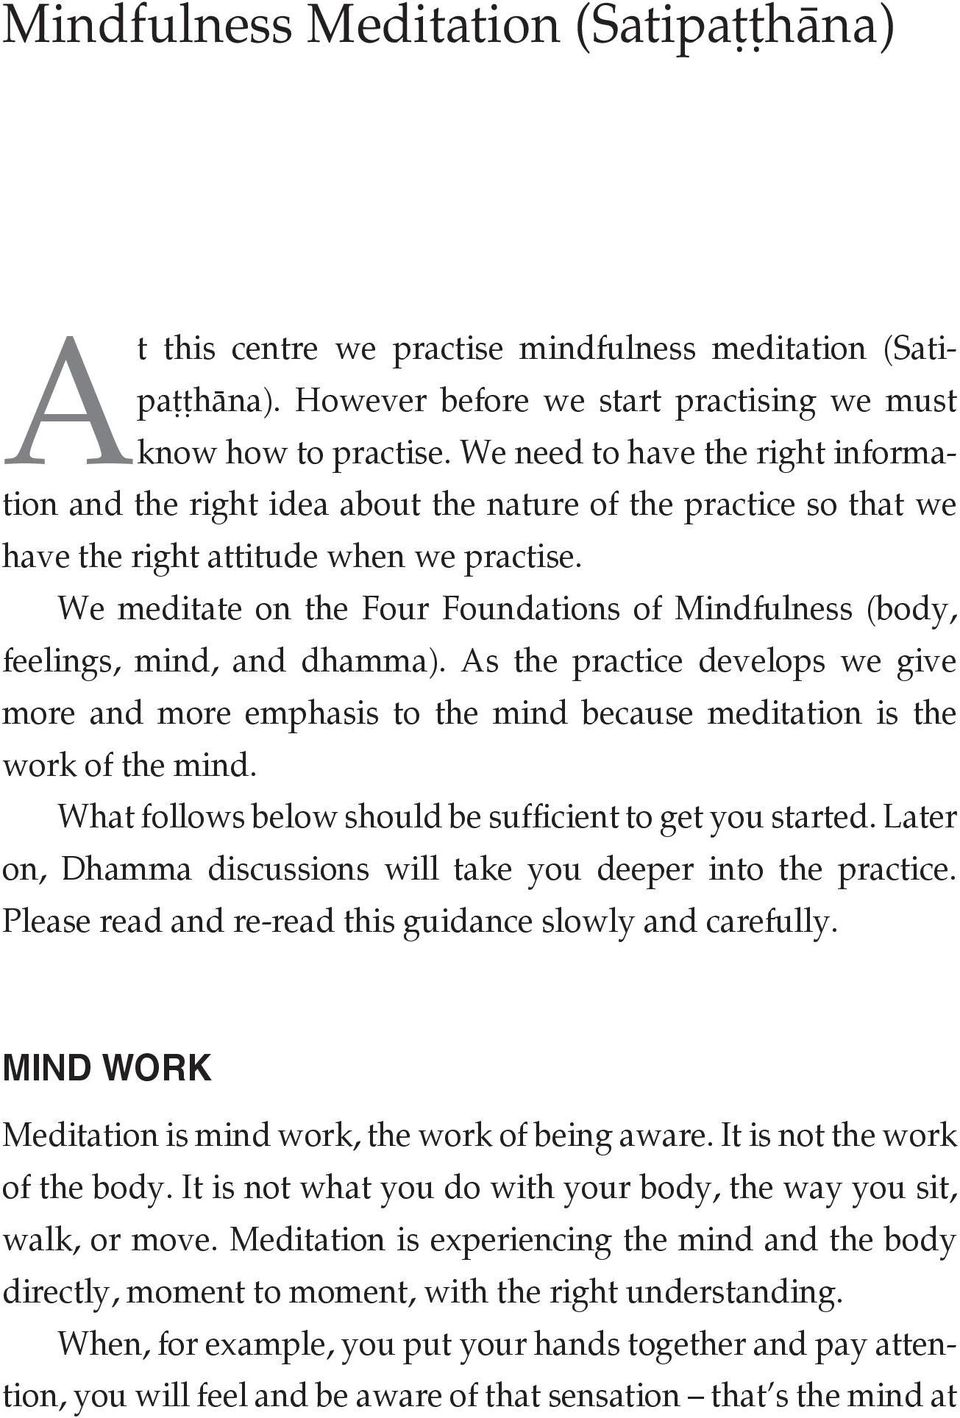 We meditate on the Four Foundations of Mindfulness (body, feelings, mind, and dhamma). As the practice develops we give more and more emphasis to the mind because meditation is the work of the mind.